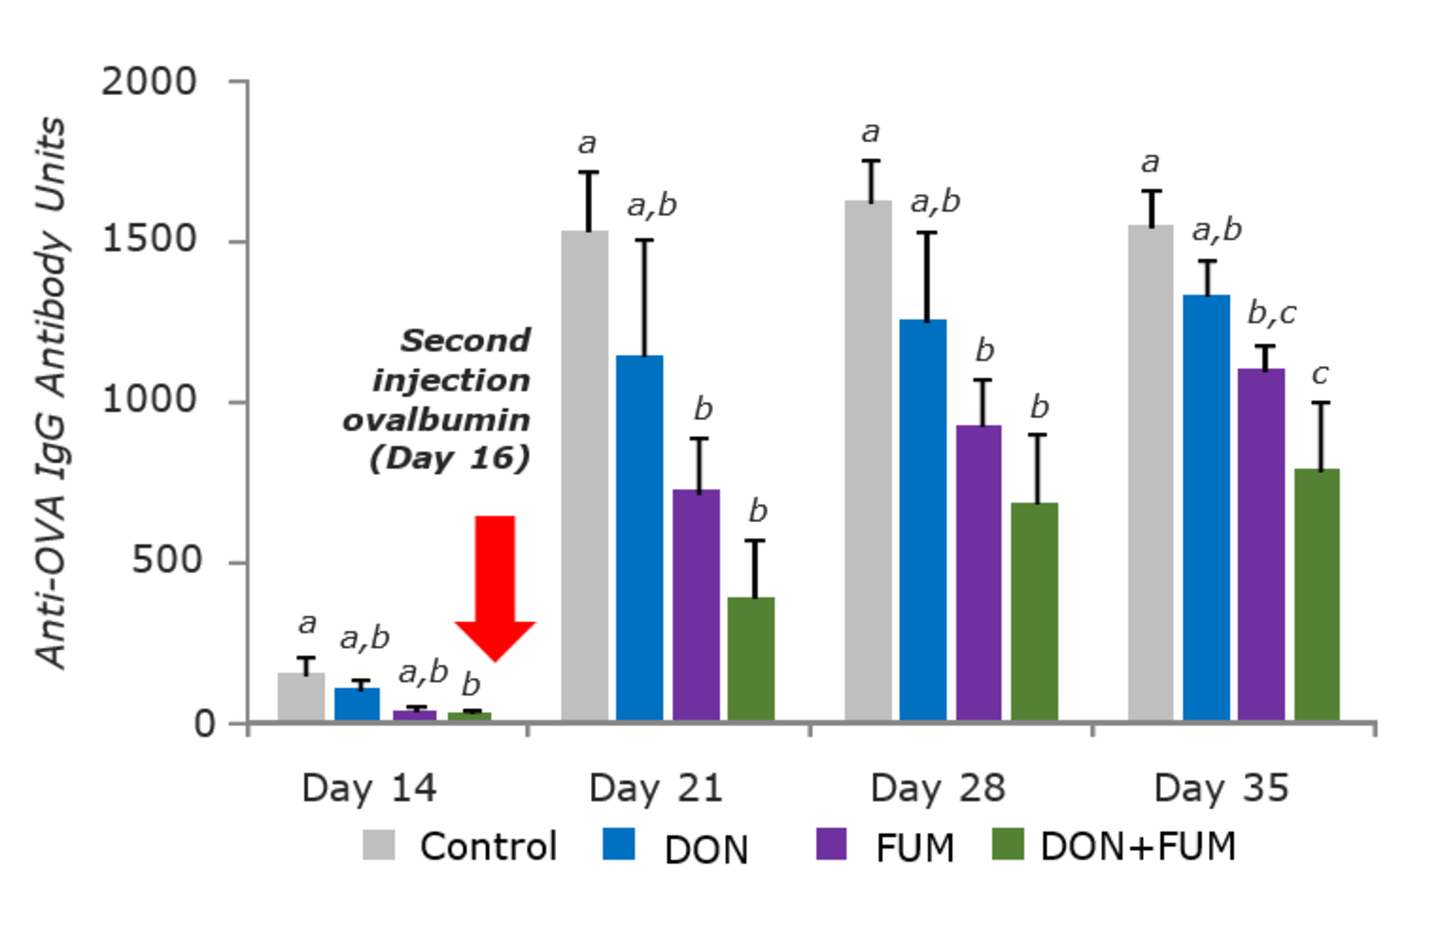 Figure 2. DON and FUM can reduce the response to vaccines with more pronounced effects seen when there is co-occurrence of DON and FUM.